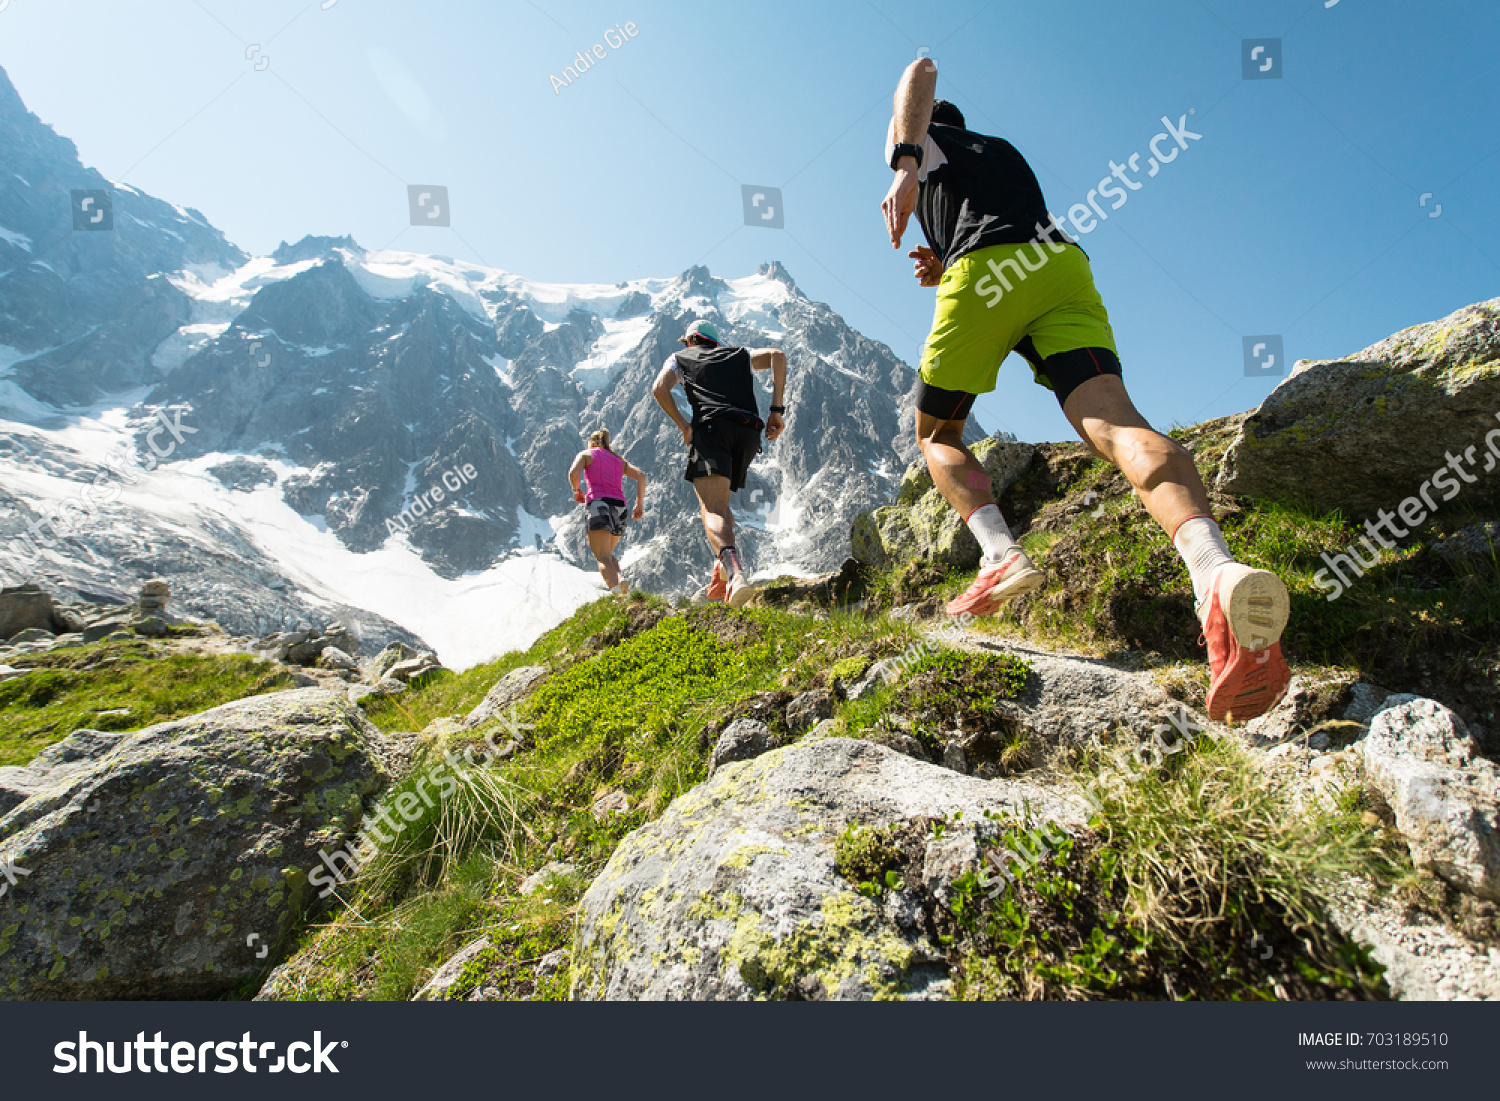 trail running adventure alps towards mountains の写真素材 今すぐ